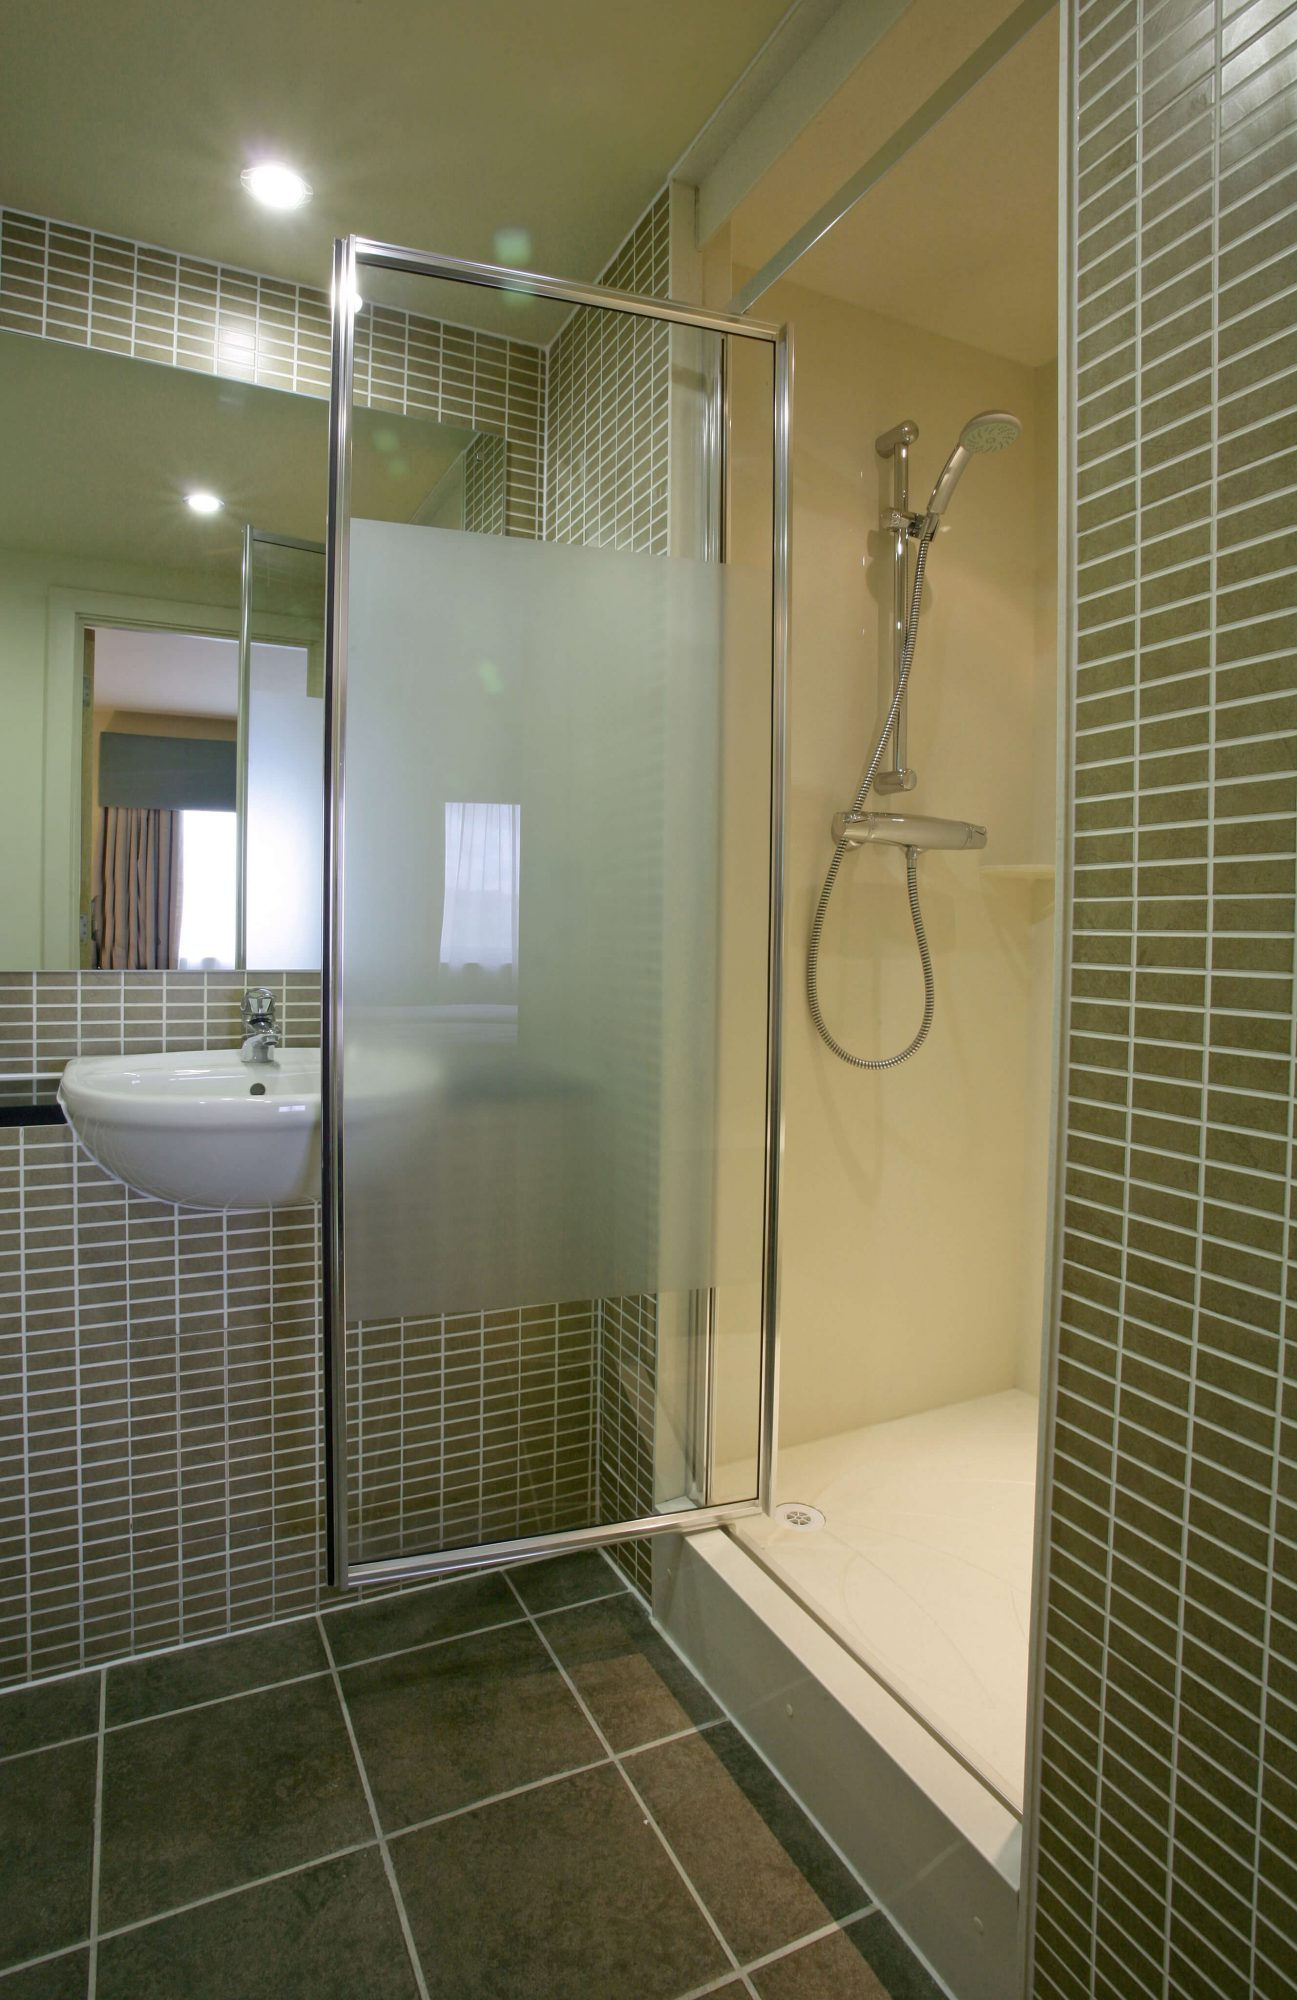 Mecure Aston Hotel shower